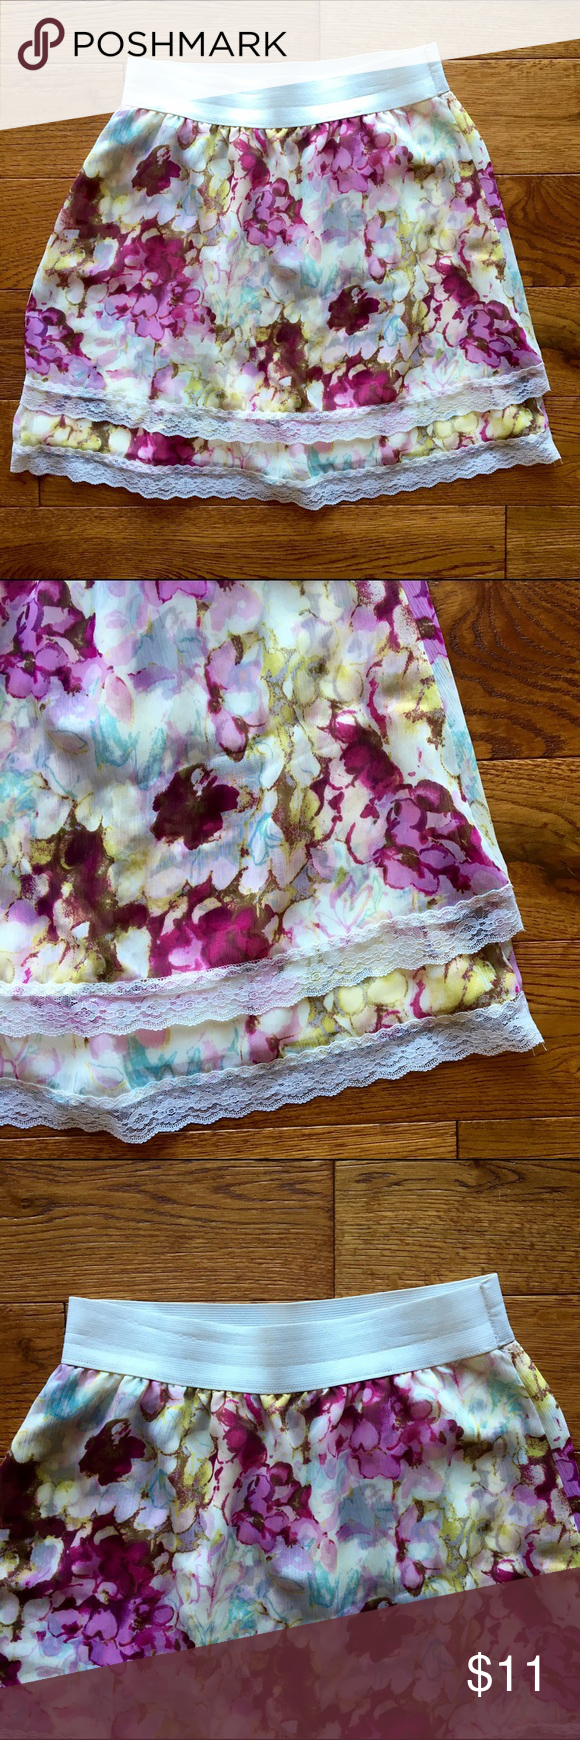 Flower Patterned Skirt • Pink flower patterns • Can be worn high waisted • Elastic waistband • Lace embroidered bottom • 18.5 inch length • Great condition • Barely worn • Lily White Skirts